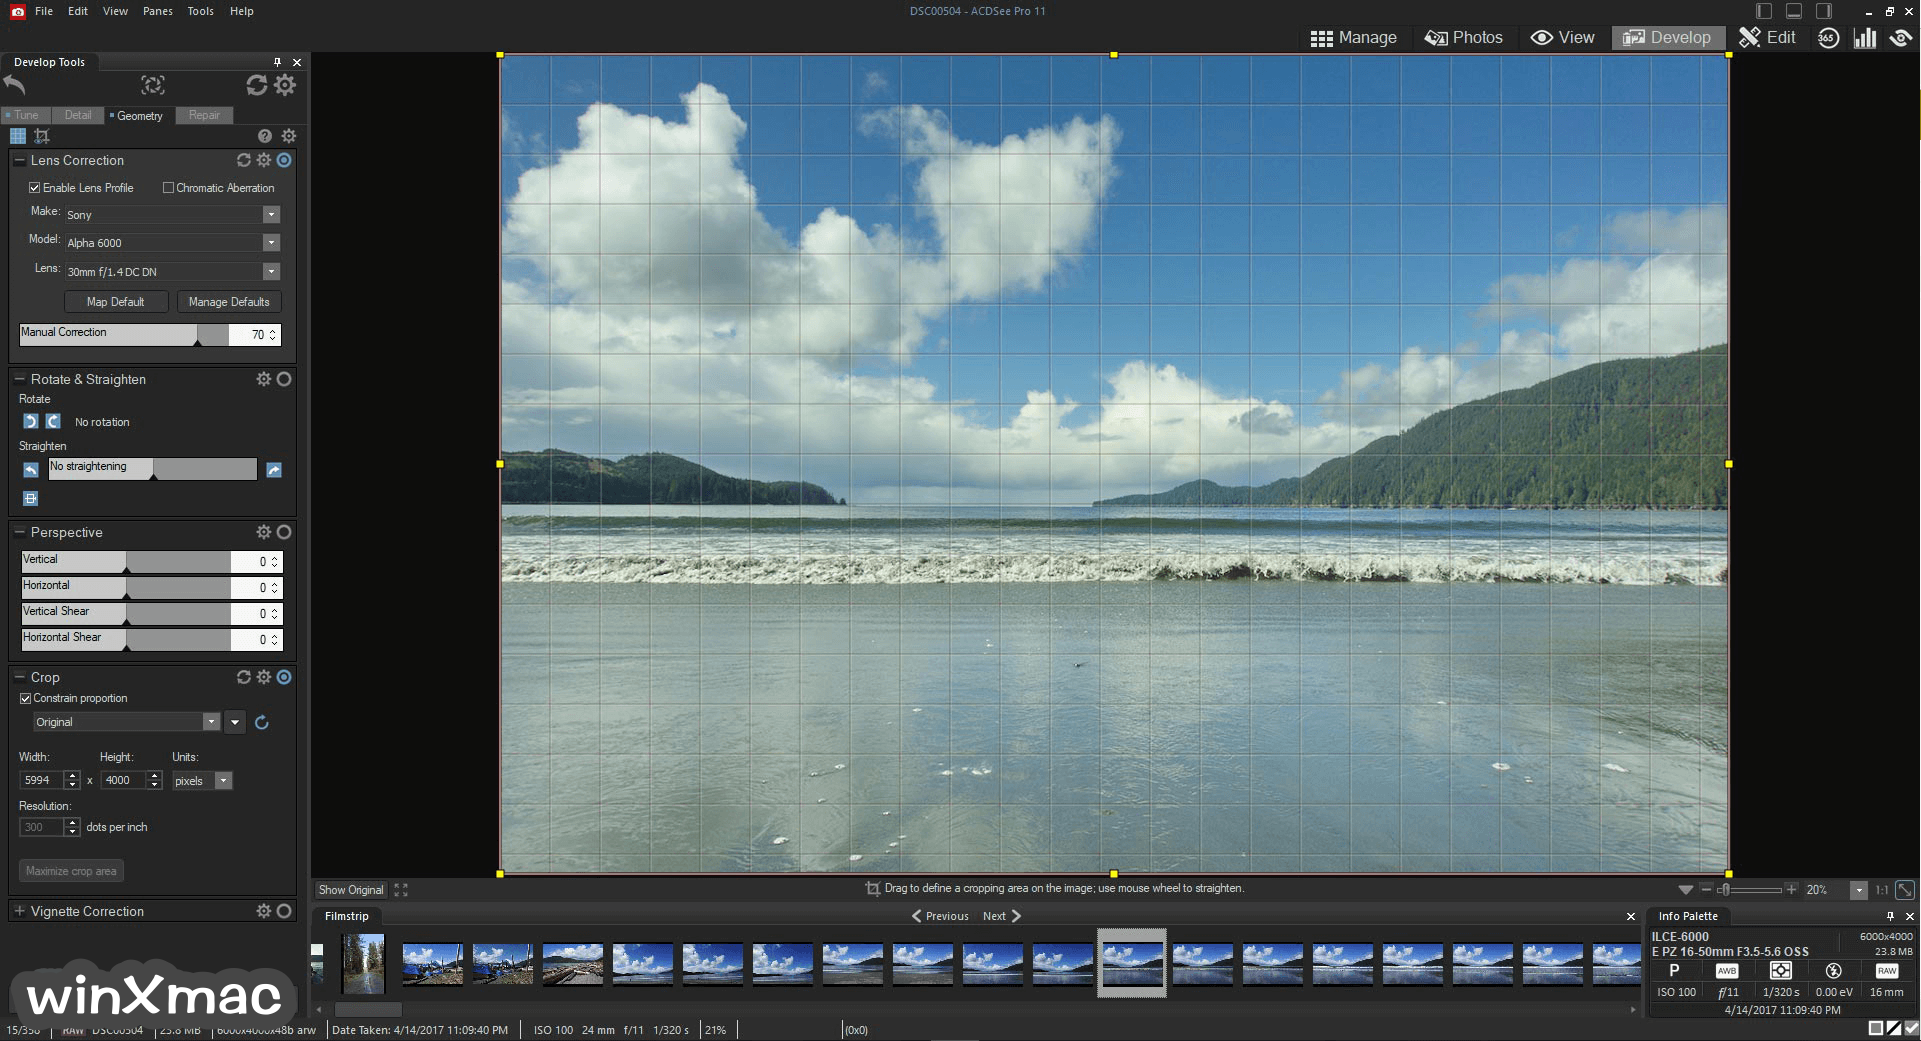 ACDSee Photo Studio Professional (64-bit) Screenshot 3